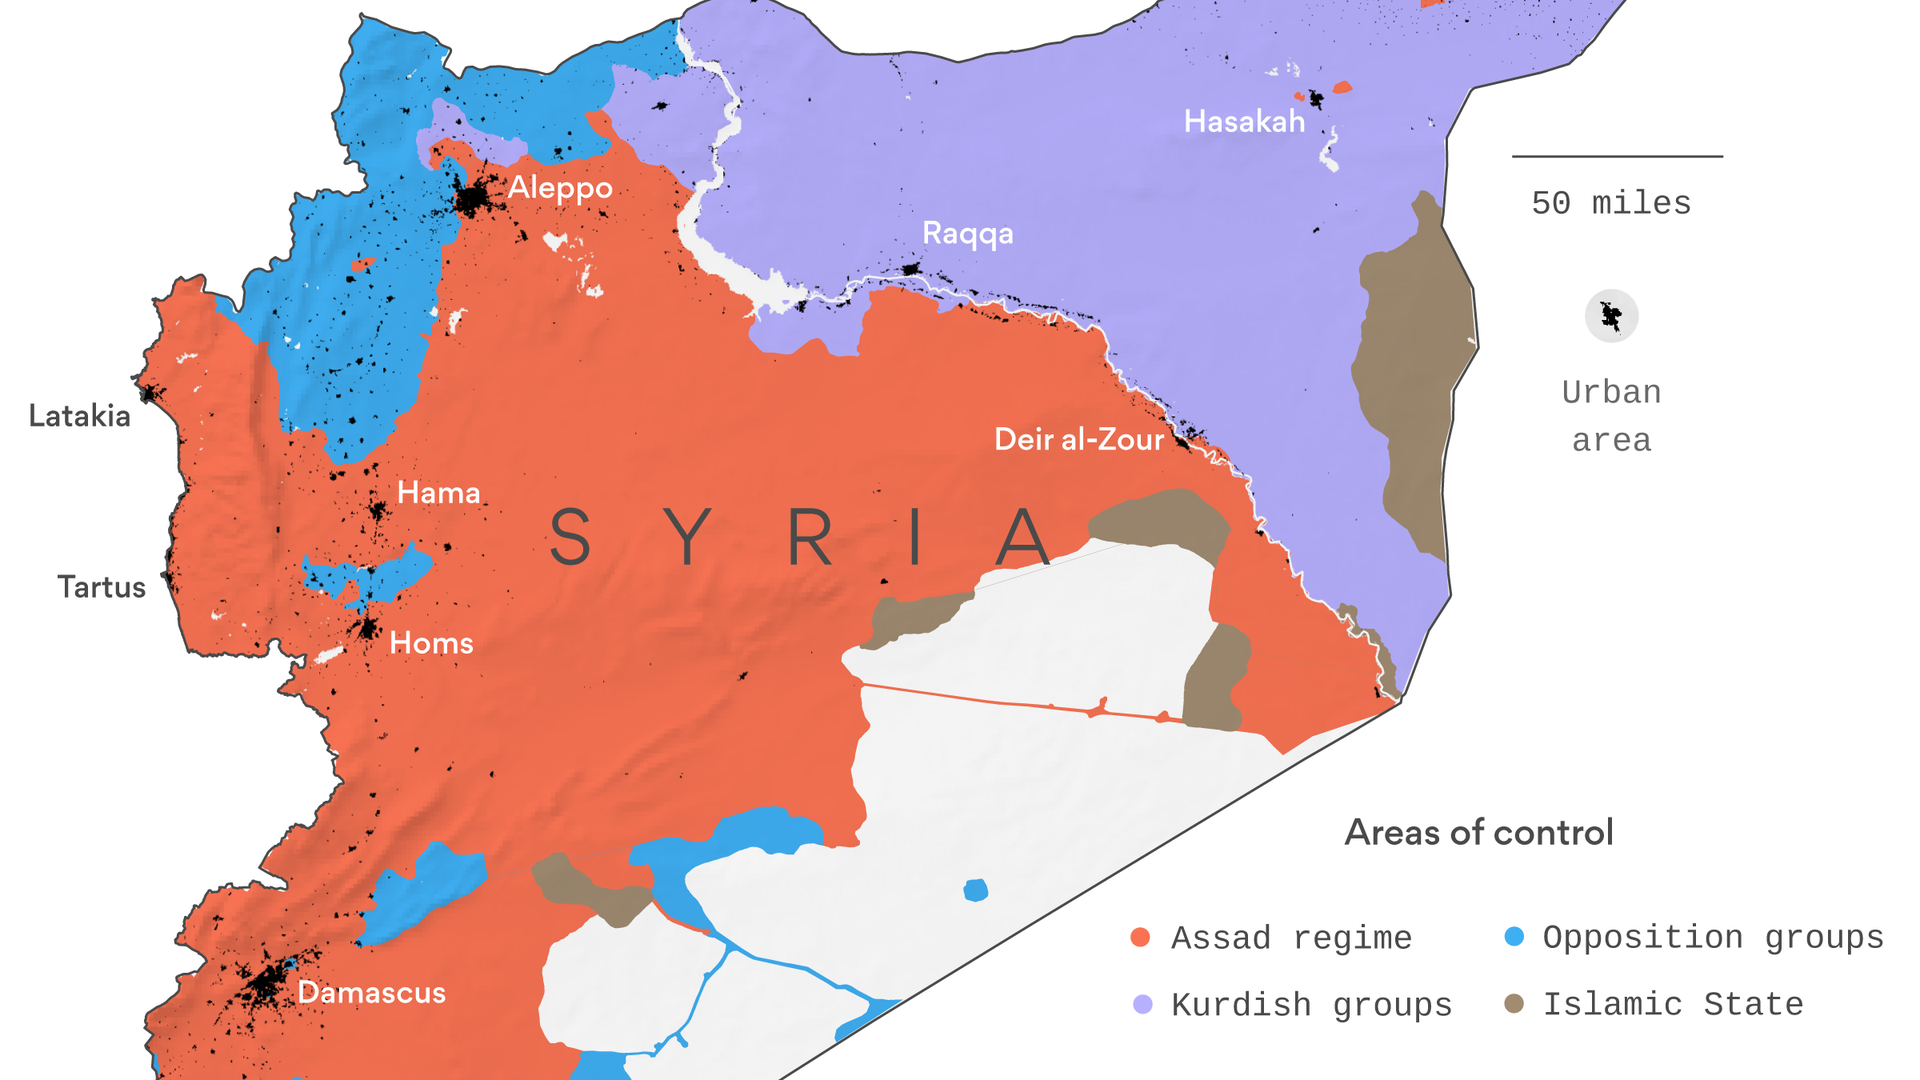 Map: The groups that control Syria - Axios Damascus World Map on cairo world map, istanbul world map, beirut world map, thebes world map, delhi on world map, ashgabat world map, basra world map, naples world map, mecca world map, middle east map, arabia world map, calicut on world map, harappa world map, algiers world map, samarkand world map, tehran world map, timbuktu world map, jerusalem world map, tripoli world map, palestine world map,